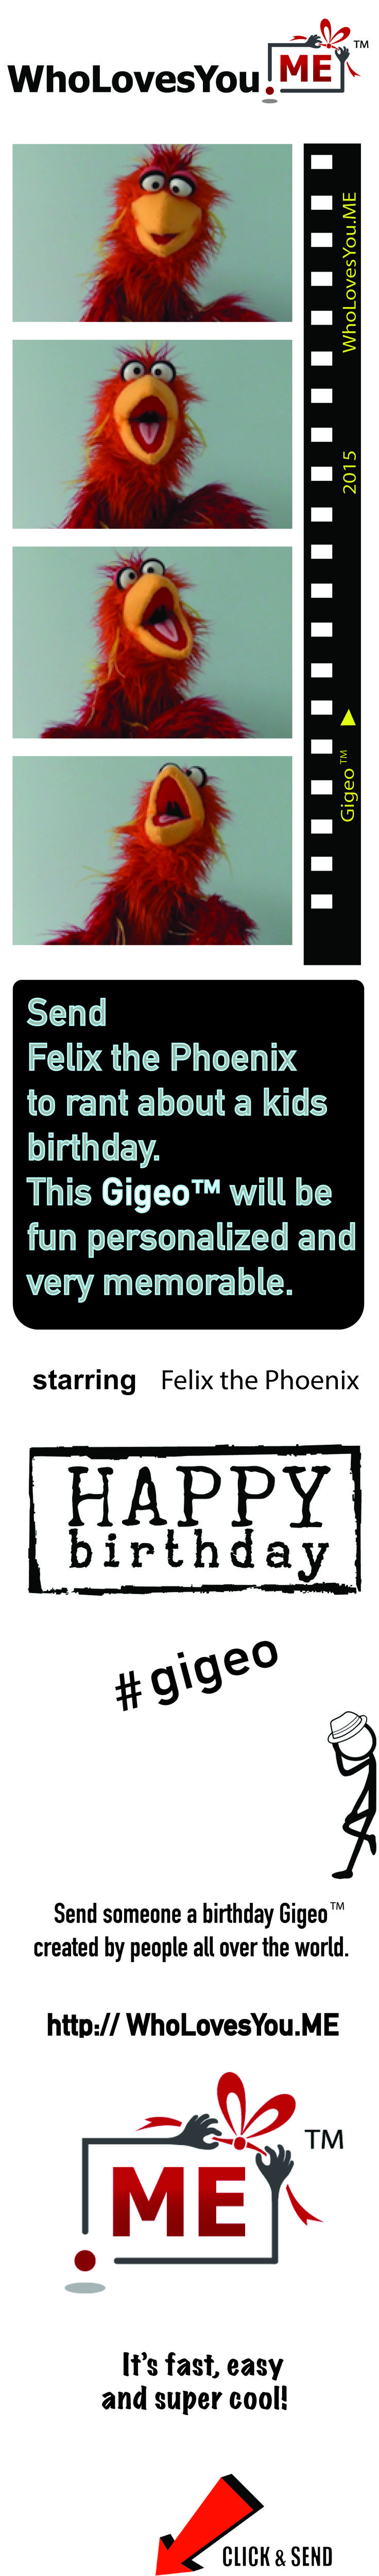 $10 |   http://WhoLovesYou.ME   Send this perfect Happy Birthday Gigeo™ for kids! Felix the Phoenix is a lovable and cuddly puppet bird who delivers your birthday message to your birthday boy or girl, and then sings a funny rendition of Happy Birthday! The lucky kid will beg to see Felix again and again!    #gigeo http://WhoLovesYou.ME